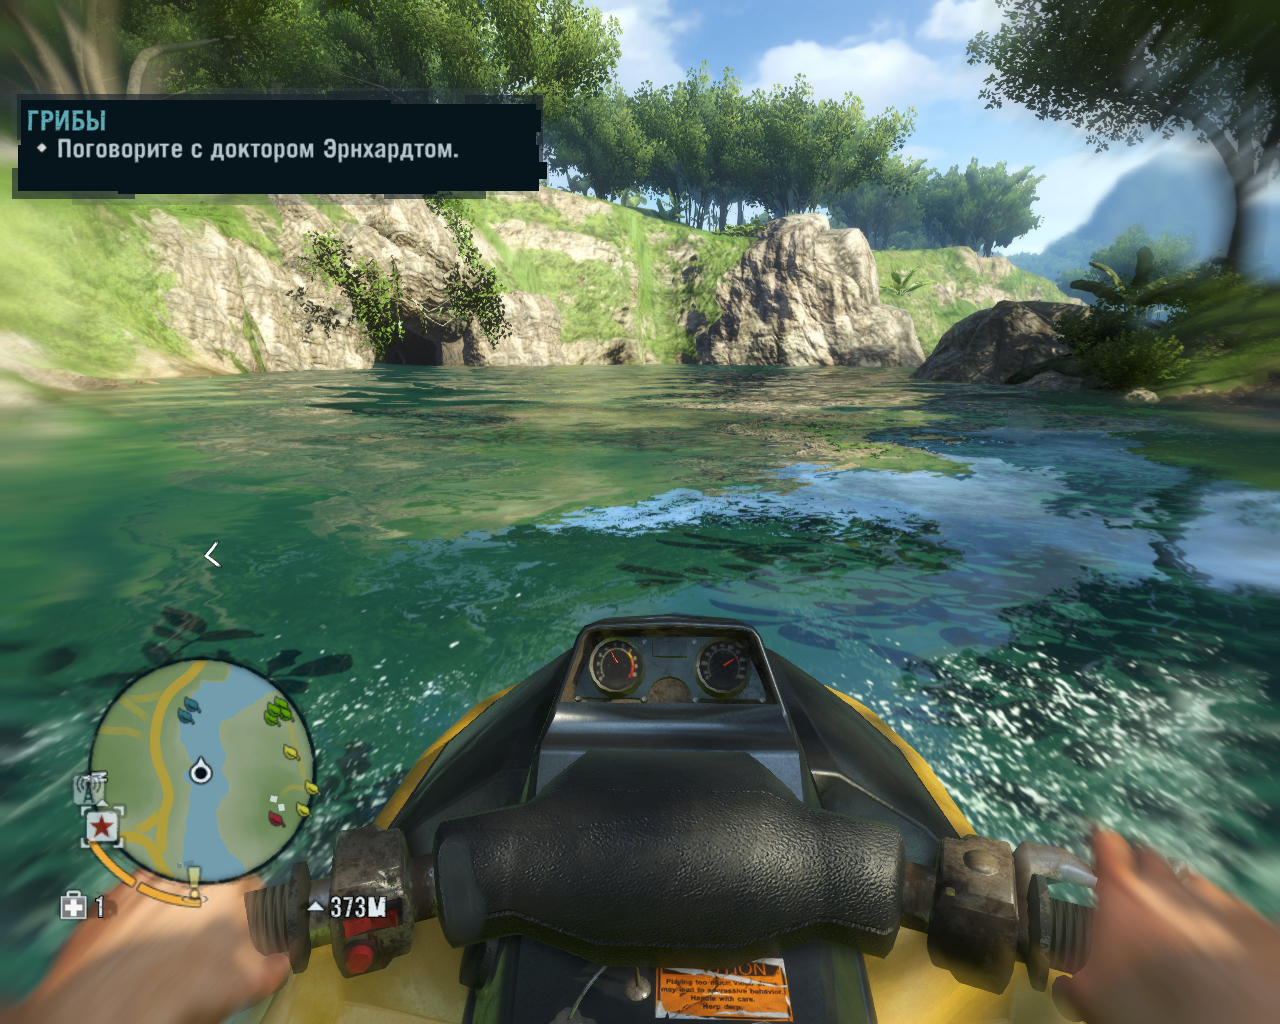 Far Cry 3 Windows On a jetski